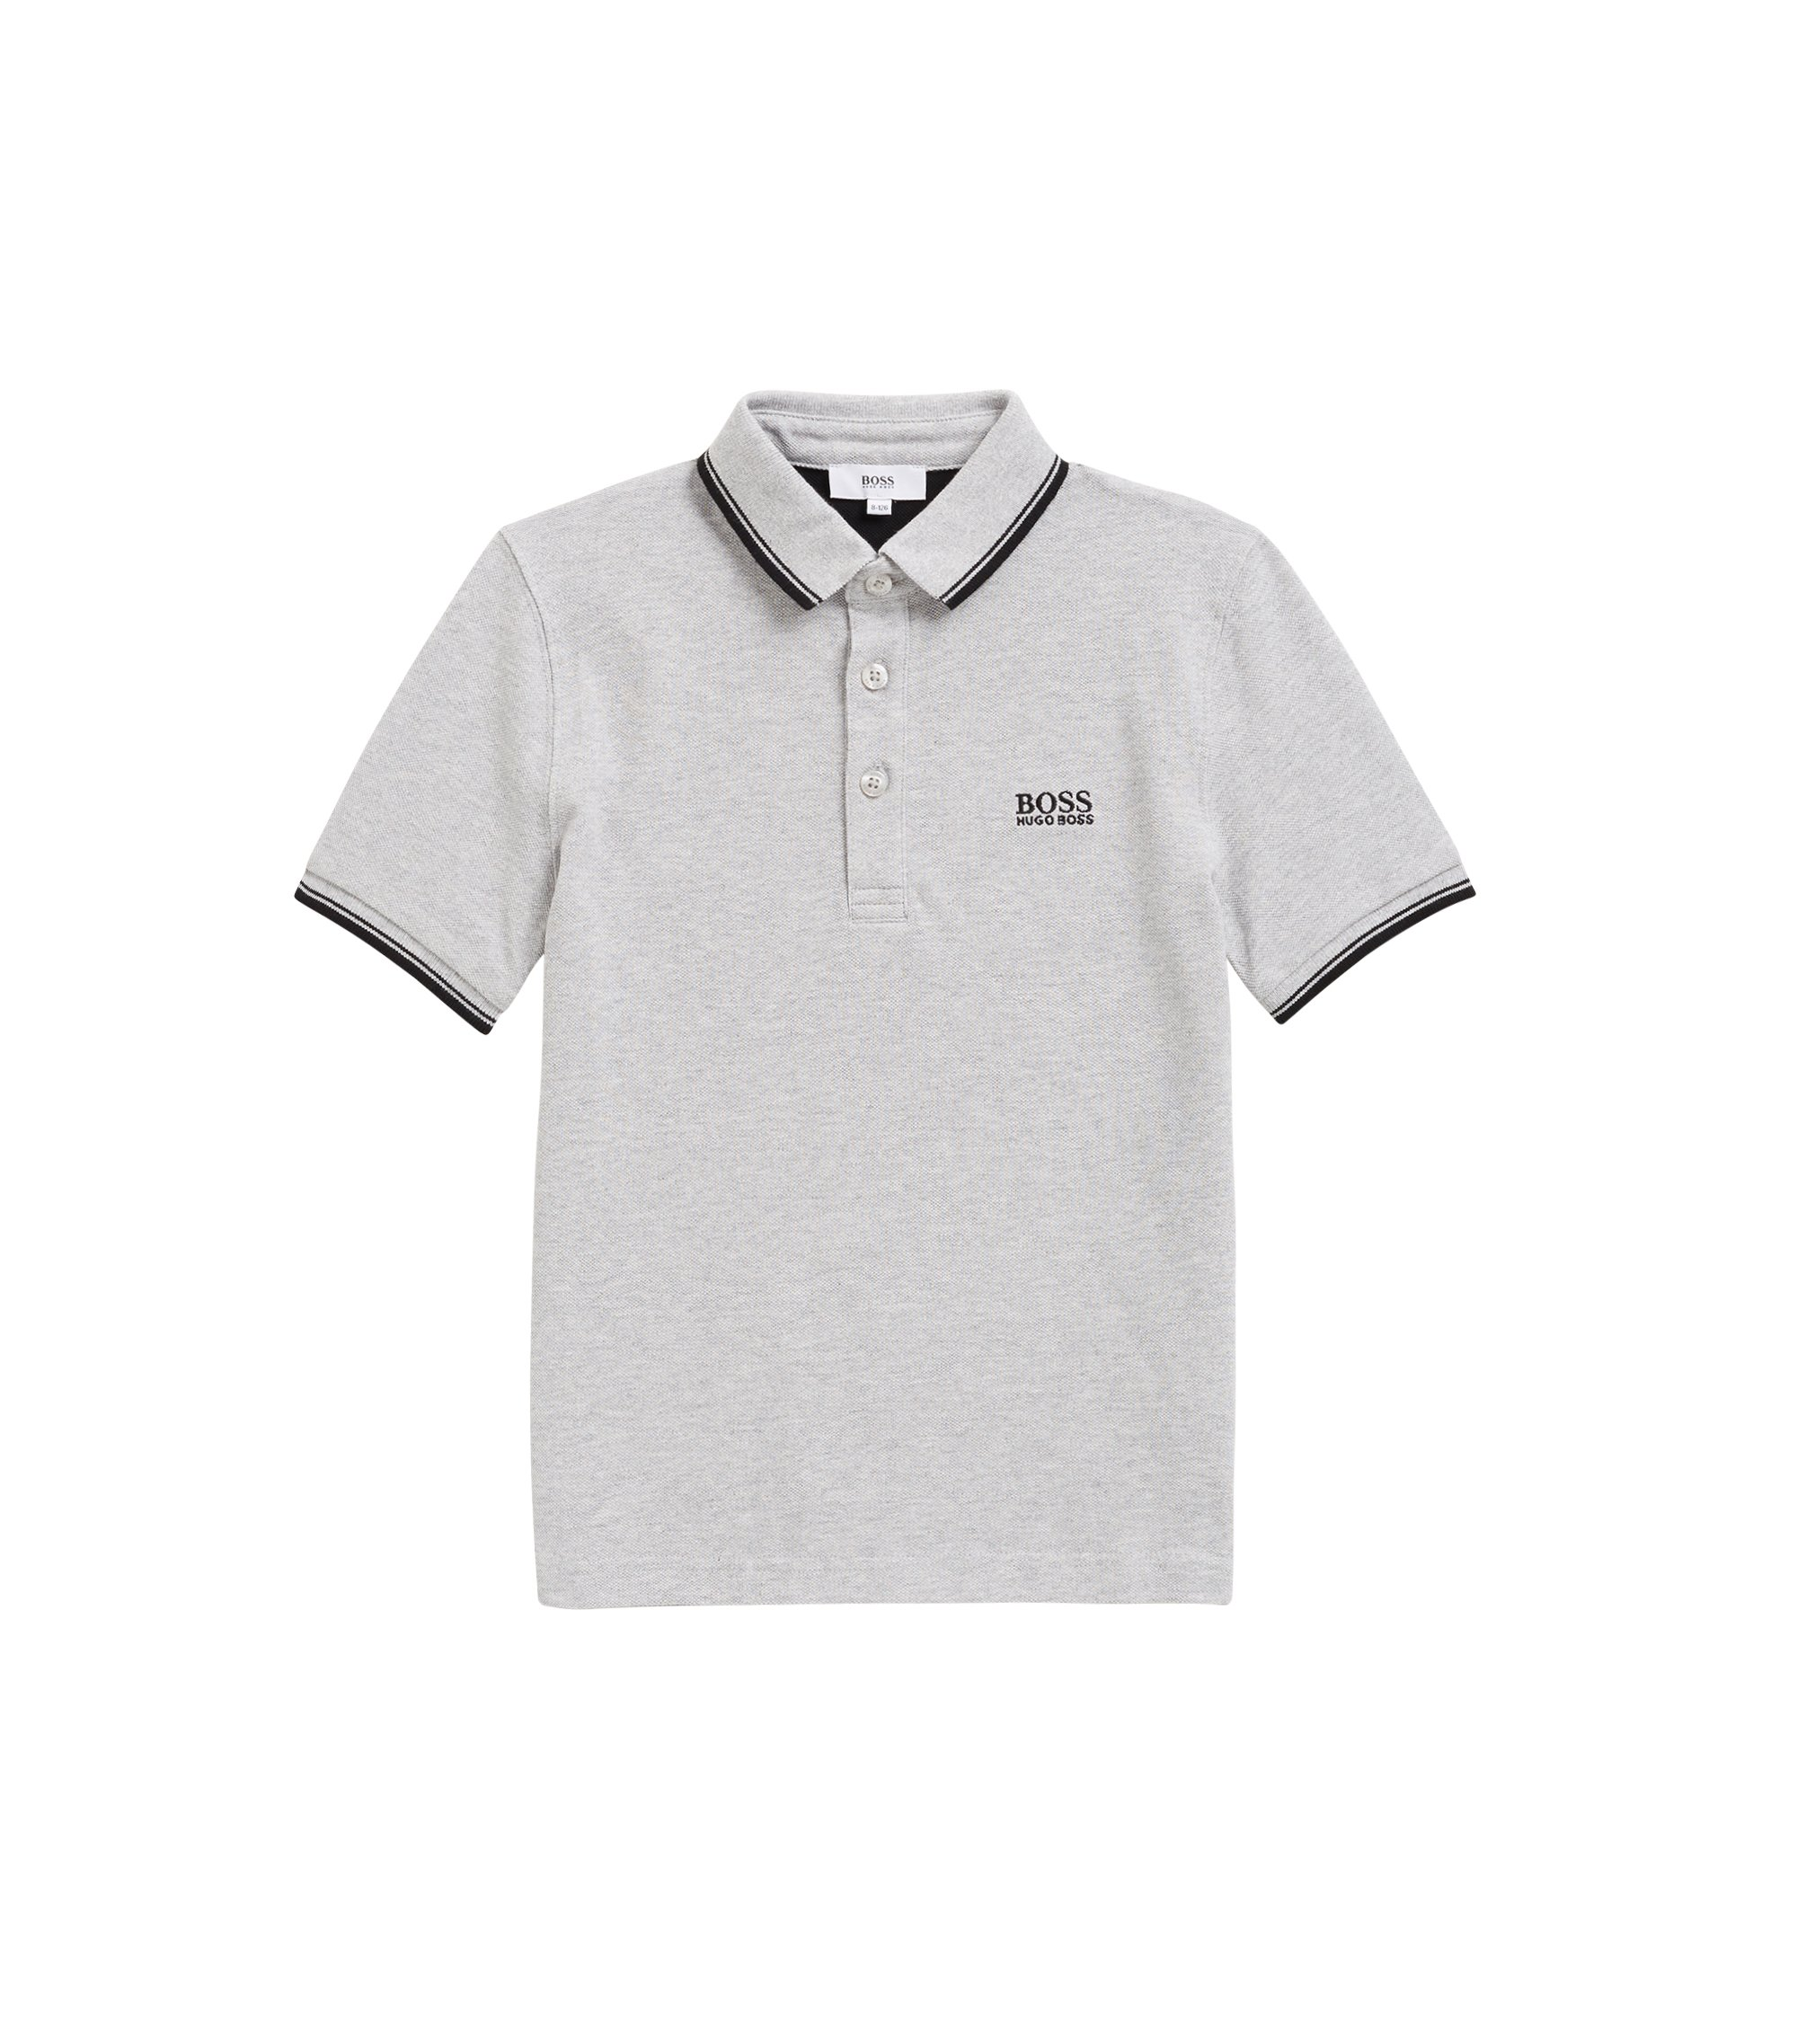 Kids' polo shirt in cotton-piqué with undercollar logo, Light Grey